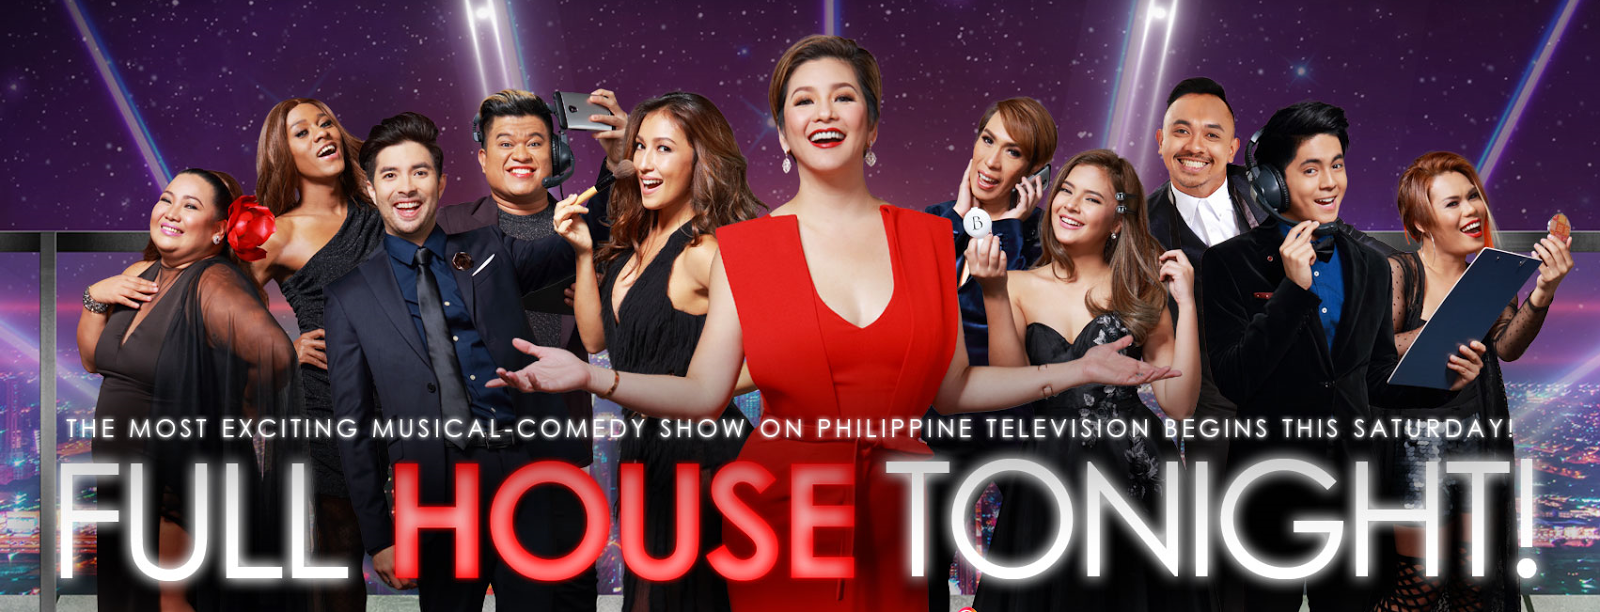 Full House Tonight March 18 2017